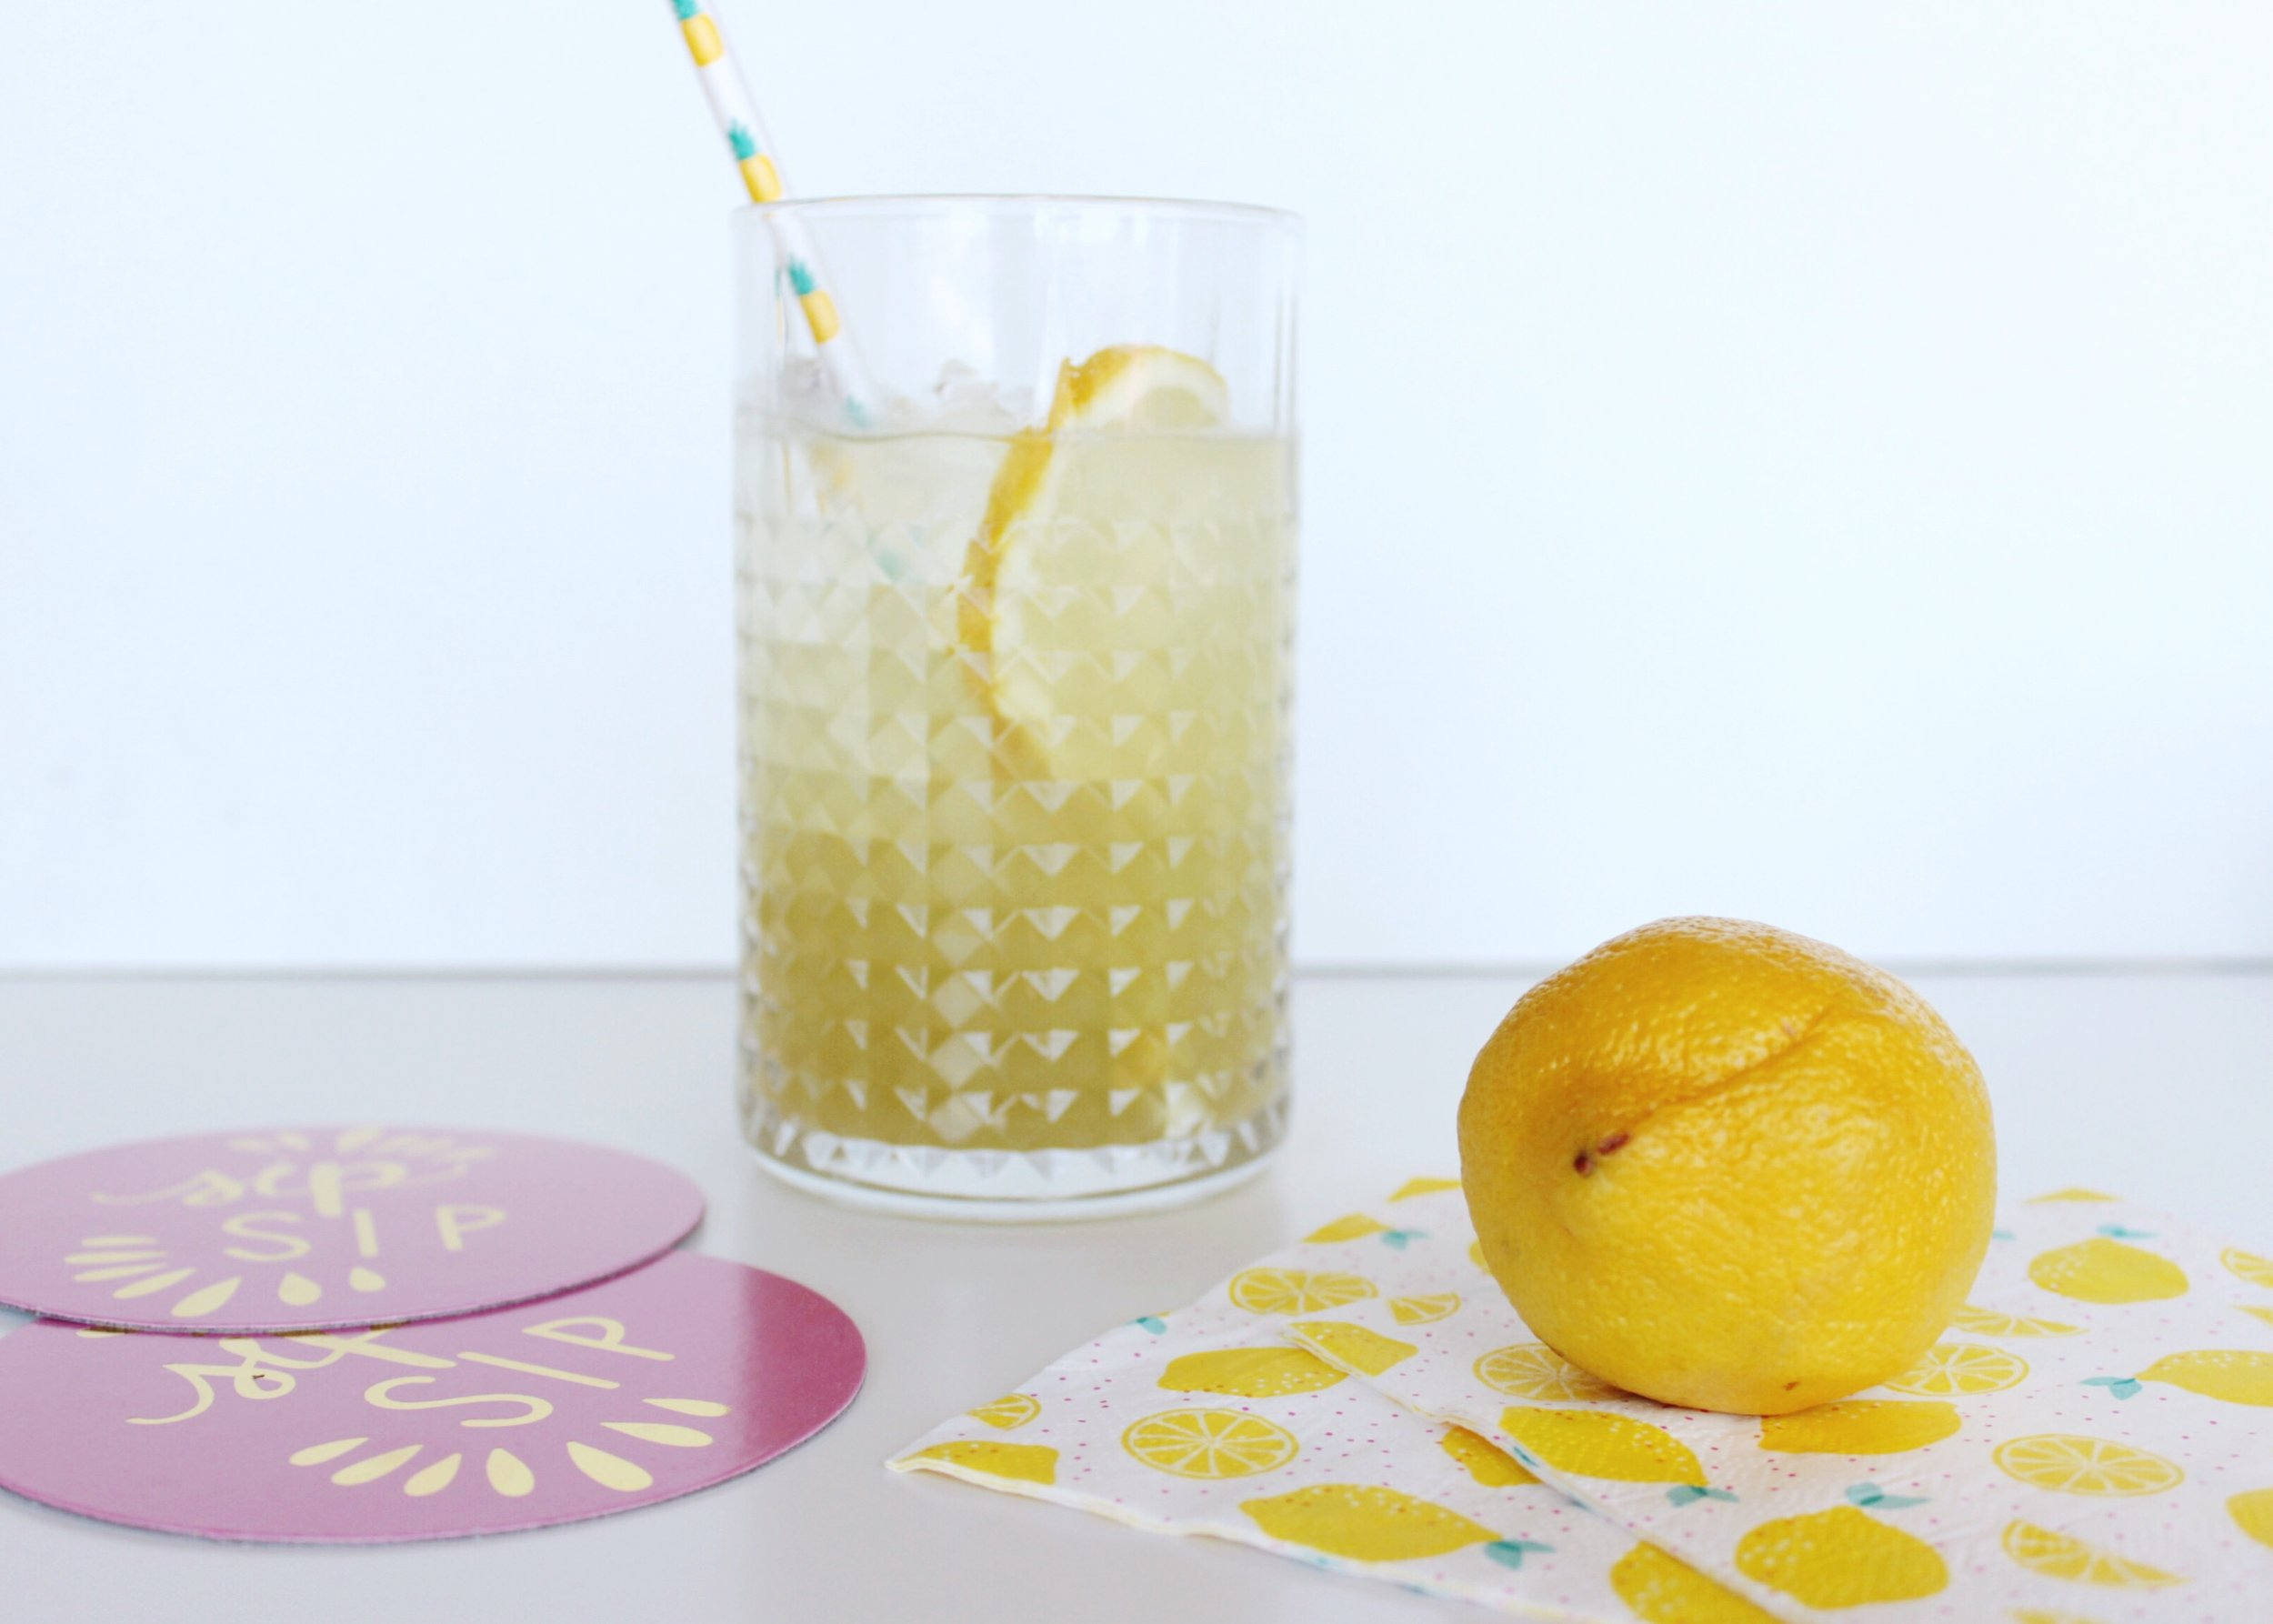 Fresh Lemon / Cocktail / Summer Drink / Pink Coasters